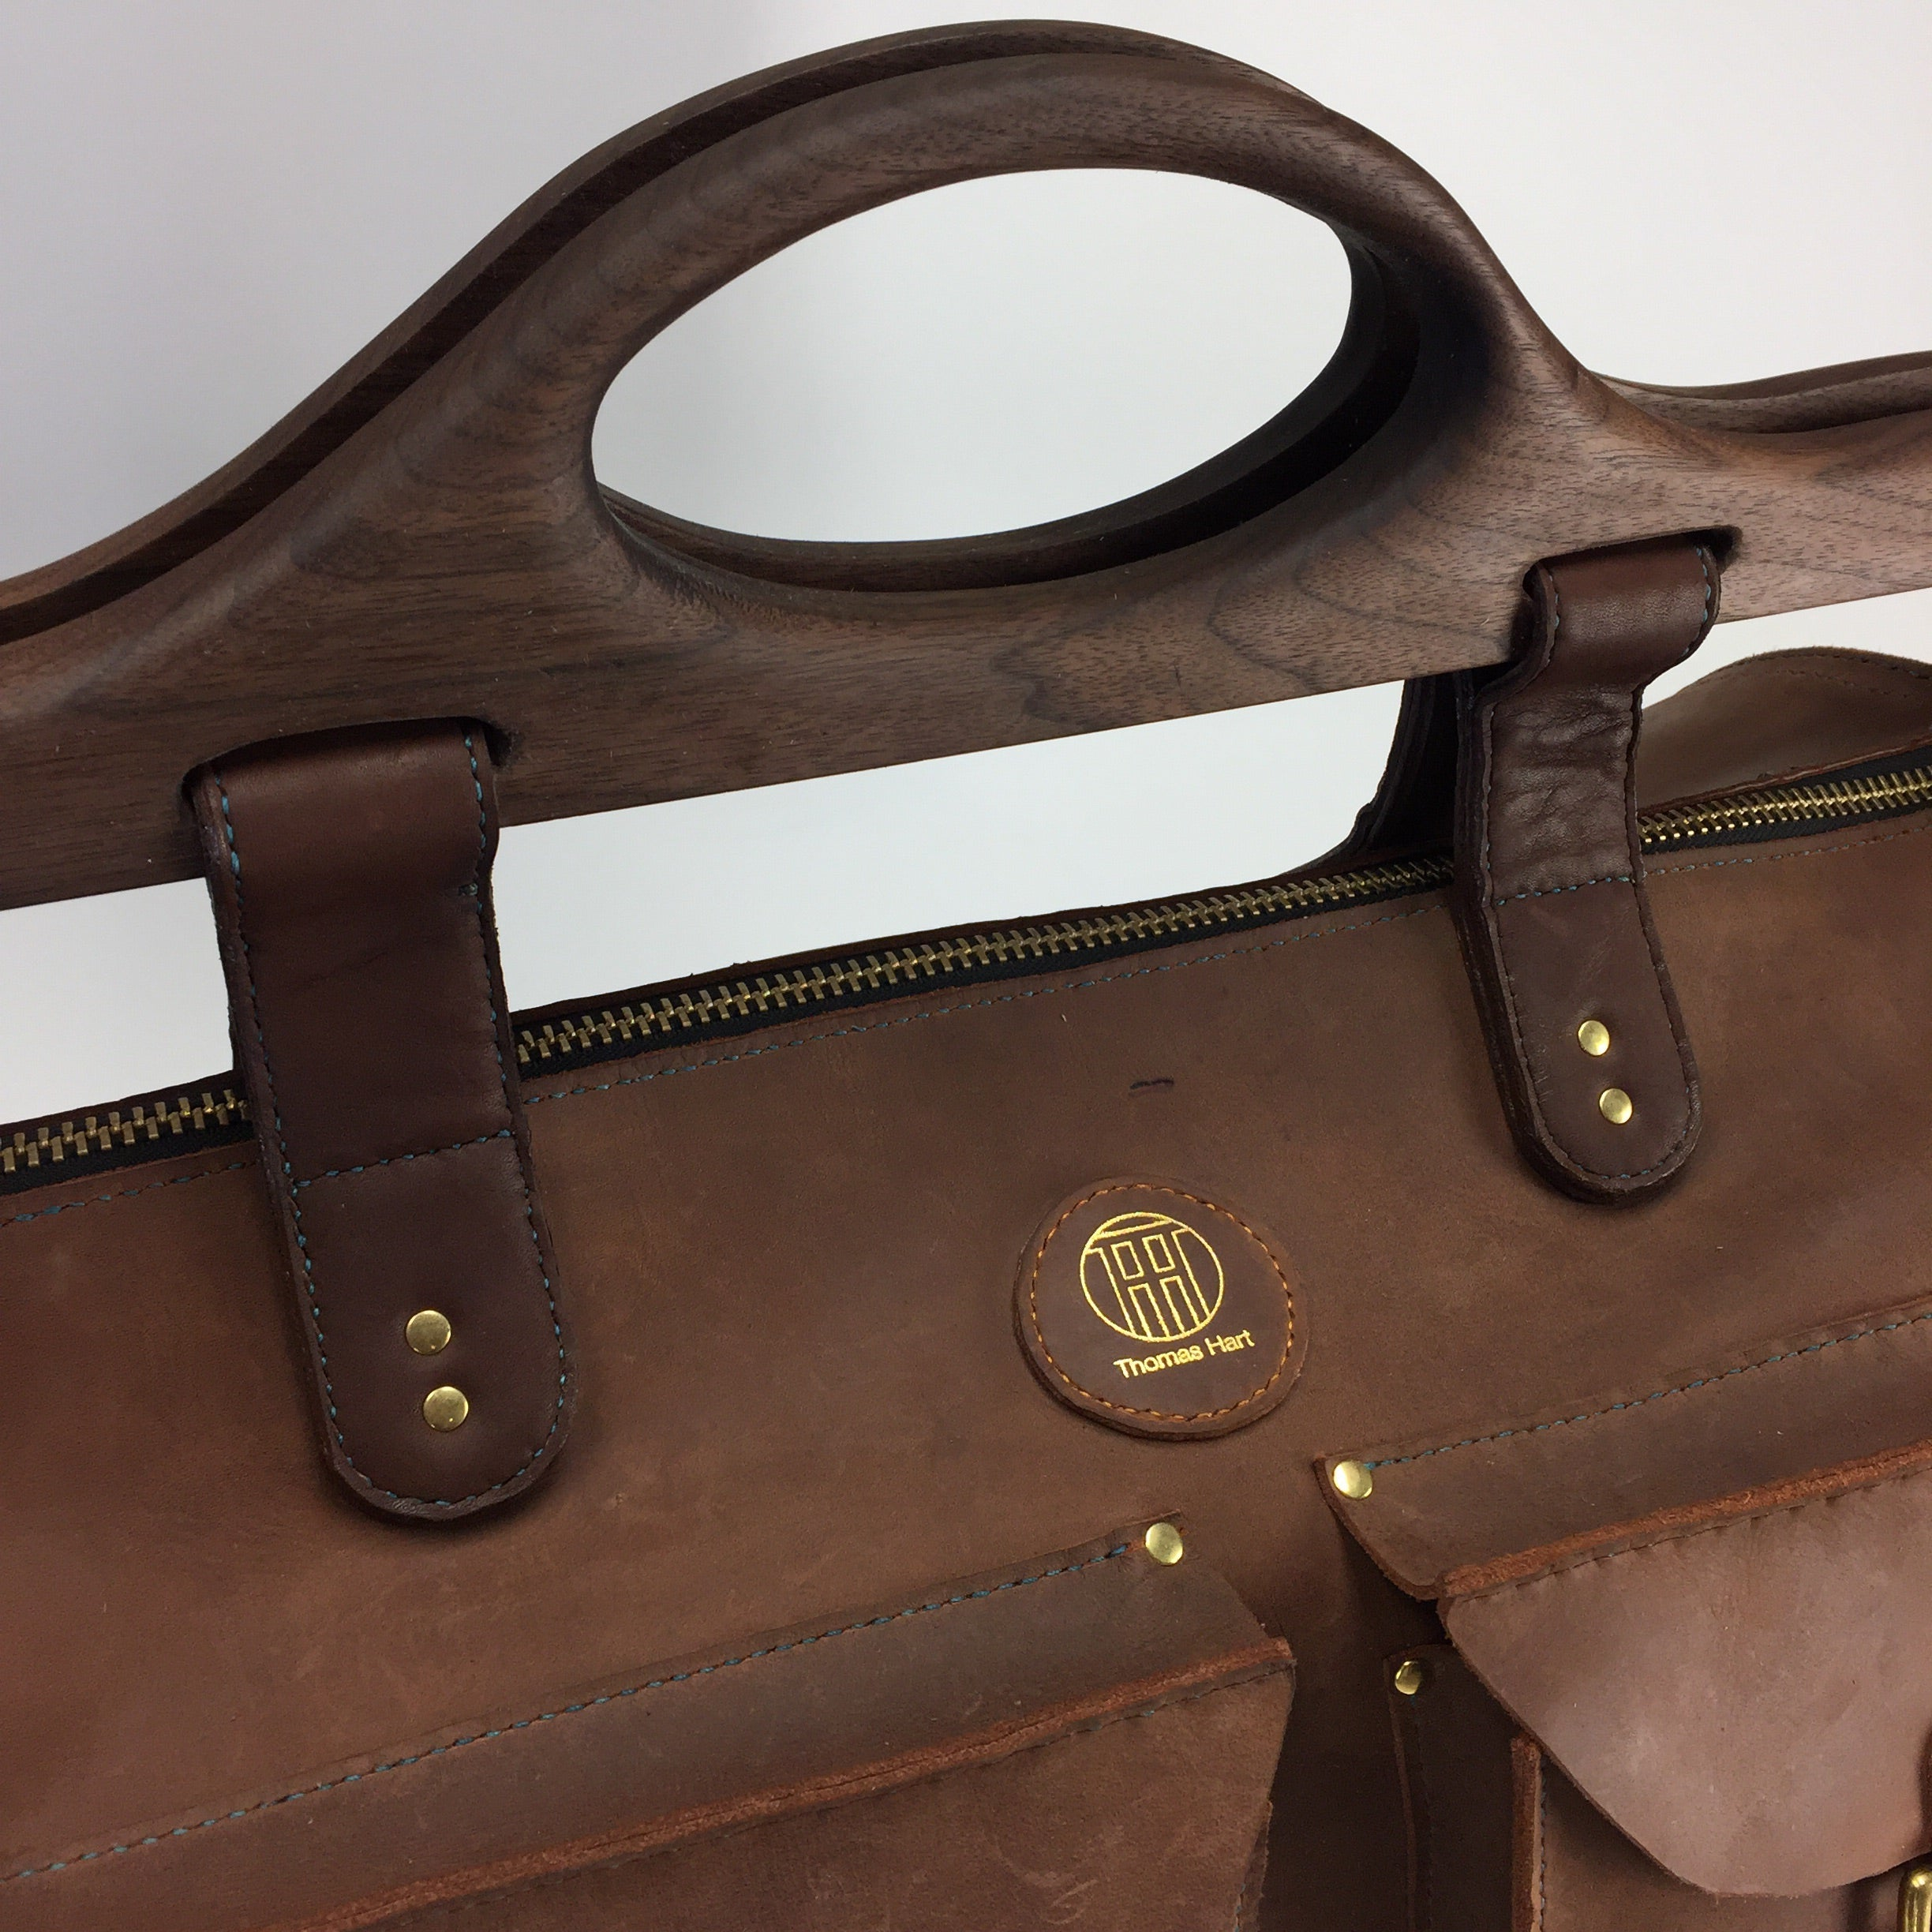 Walnut wood duffle bag handle